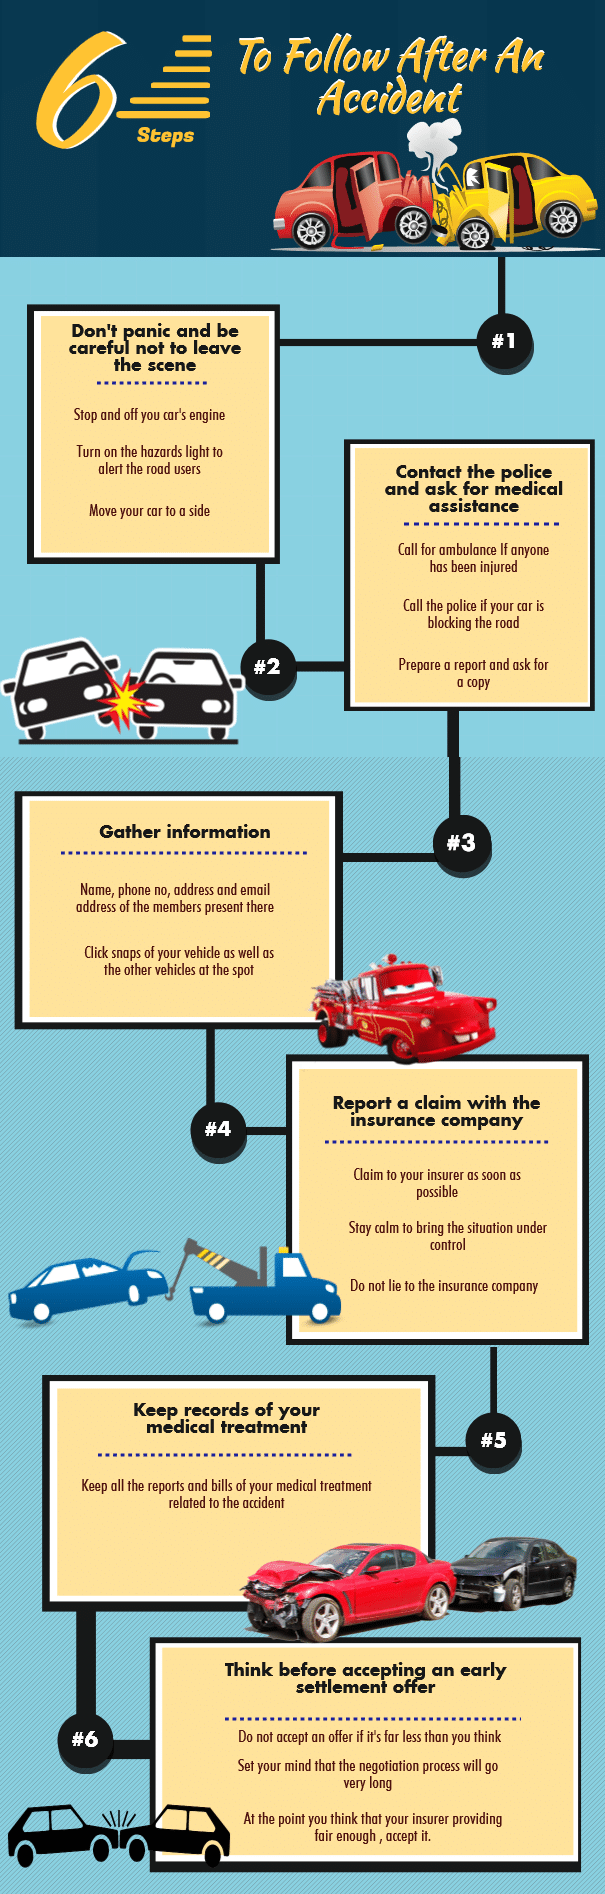 6 Steps To Follow After An Accident